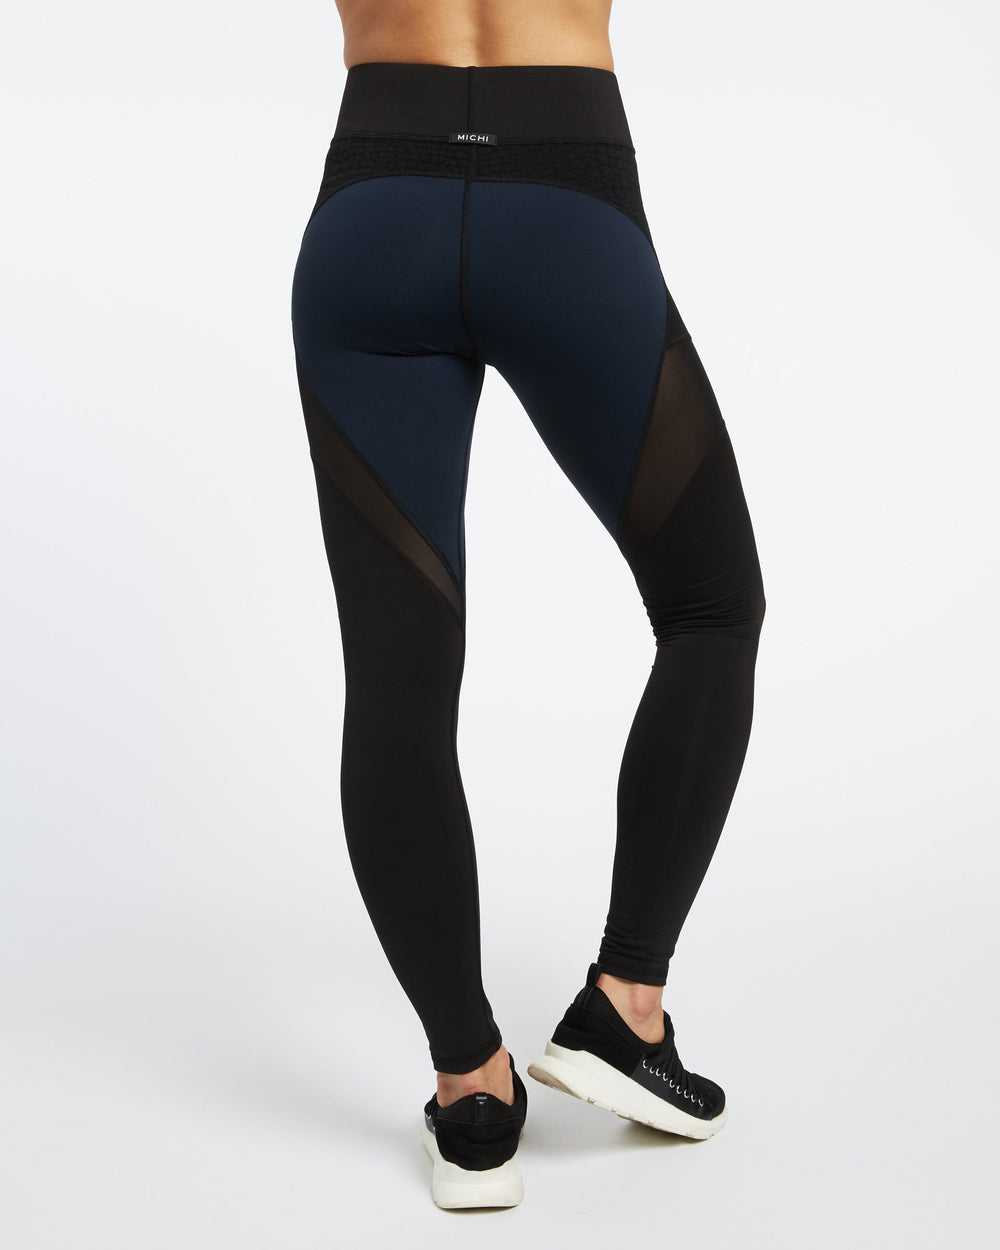 Mirage Legging - Deep Sea Navy / Black